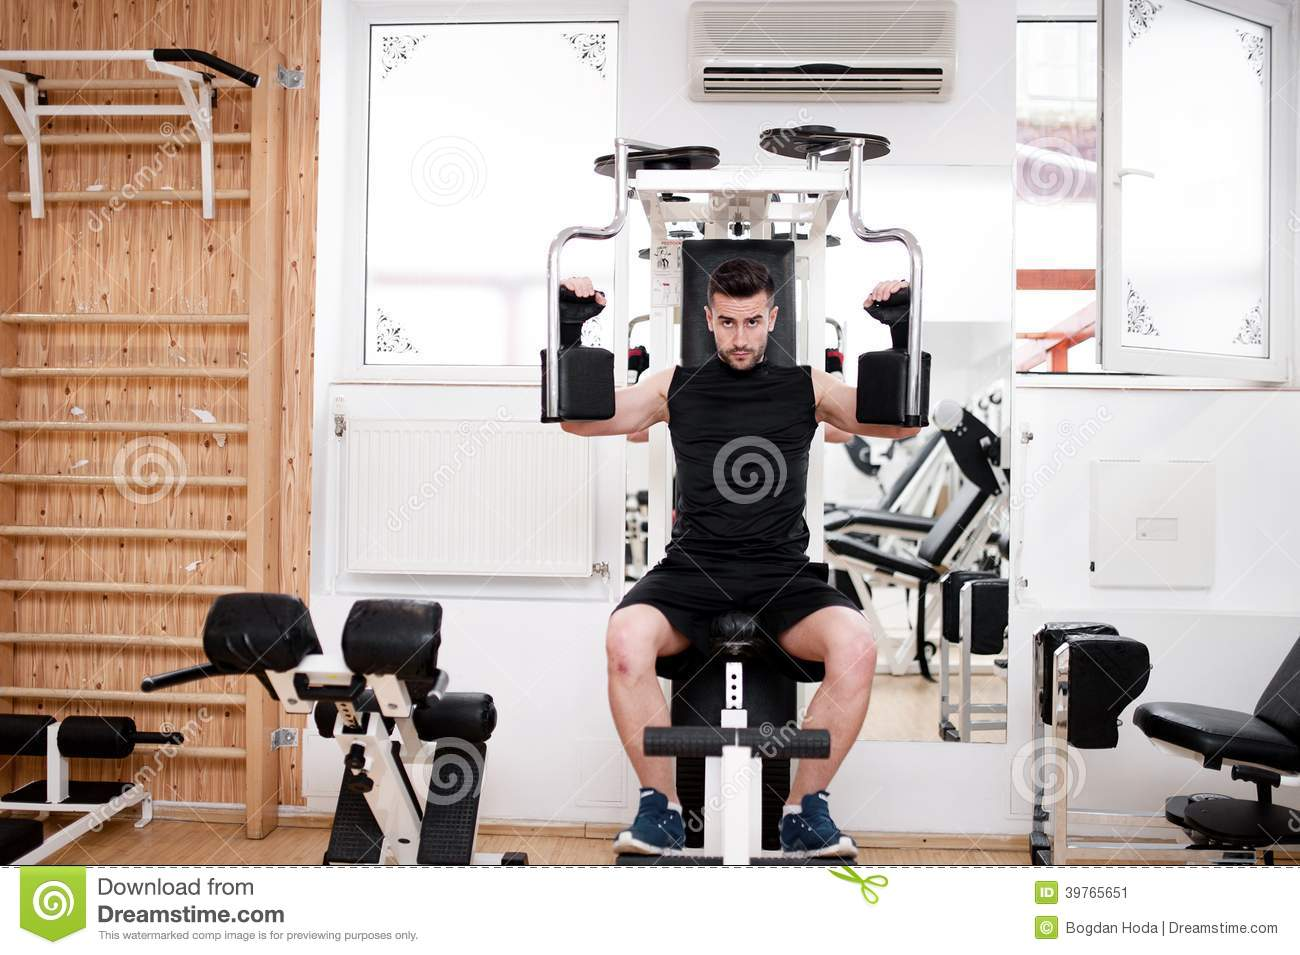 Download Handsome Man Working Out At Gym Daily Chest Exercise Routine Stock Image